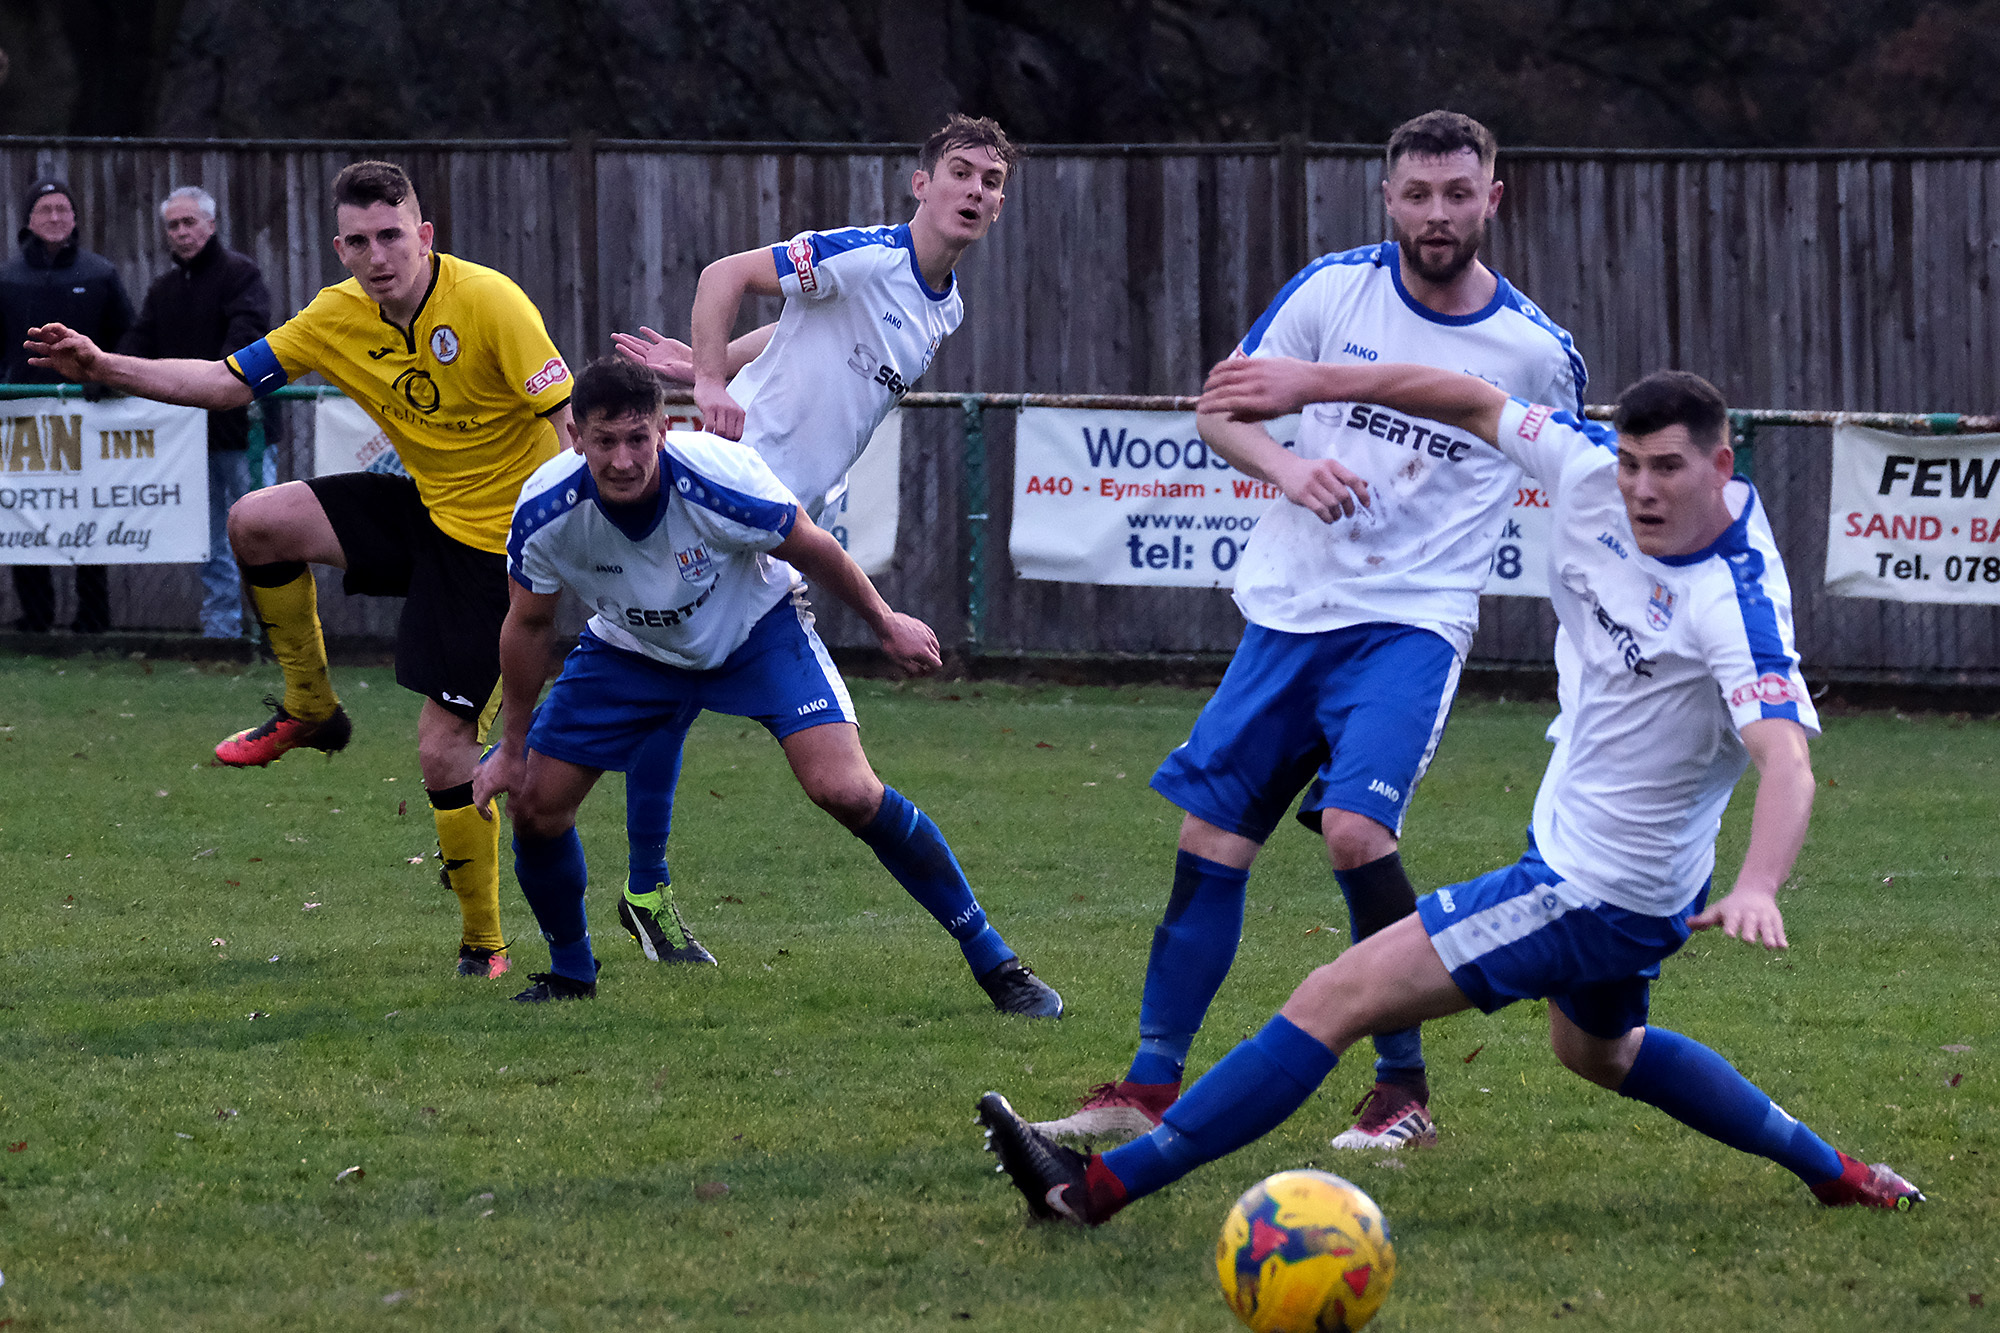 Harry Grant's fierce shot beat four Coleshill defenders but went narrowly wide during North Leigh's home defeat on Saturday	                    Picture: Ric Mellis